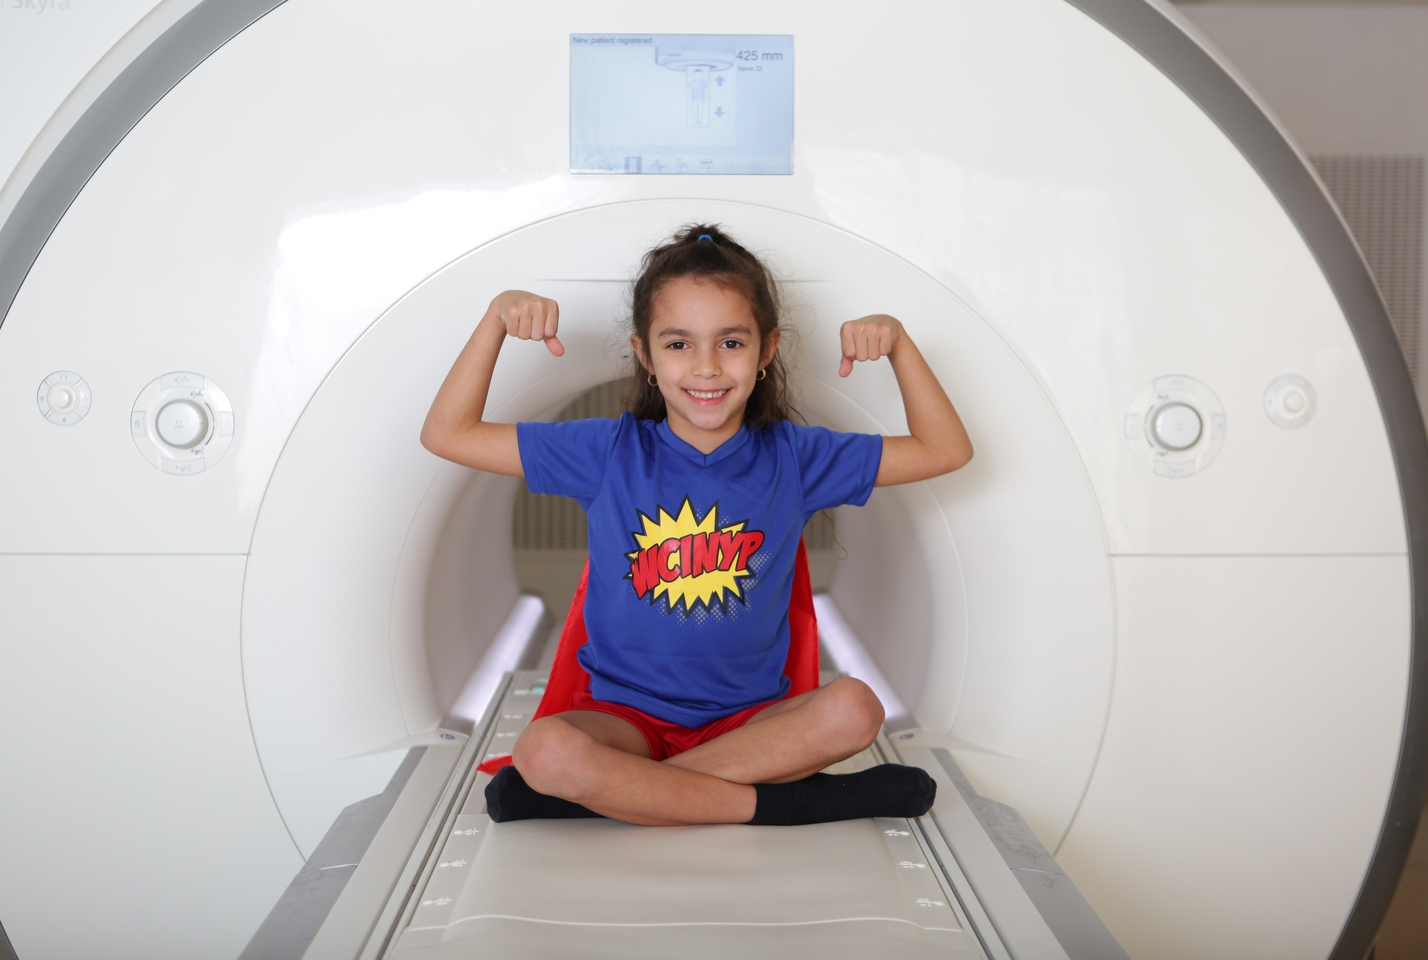 A young girl poses in an MRI machine